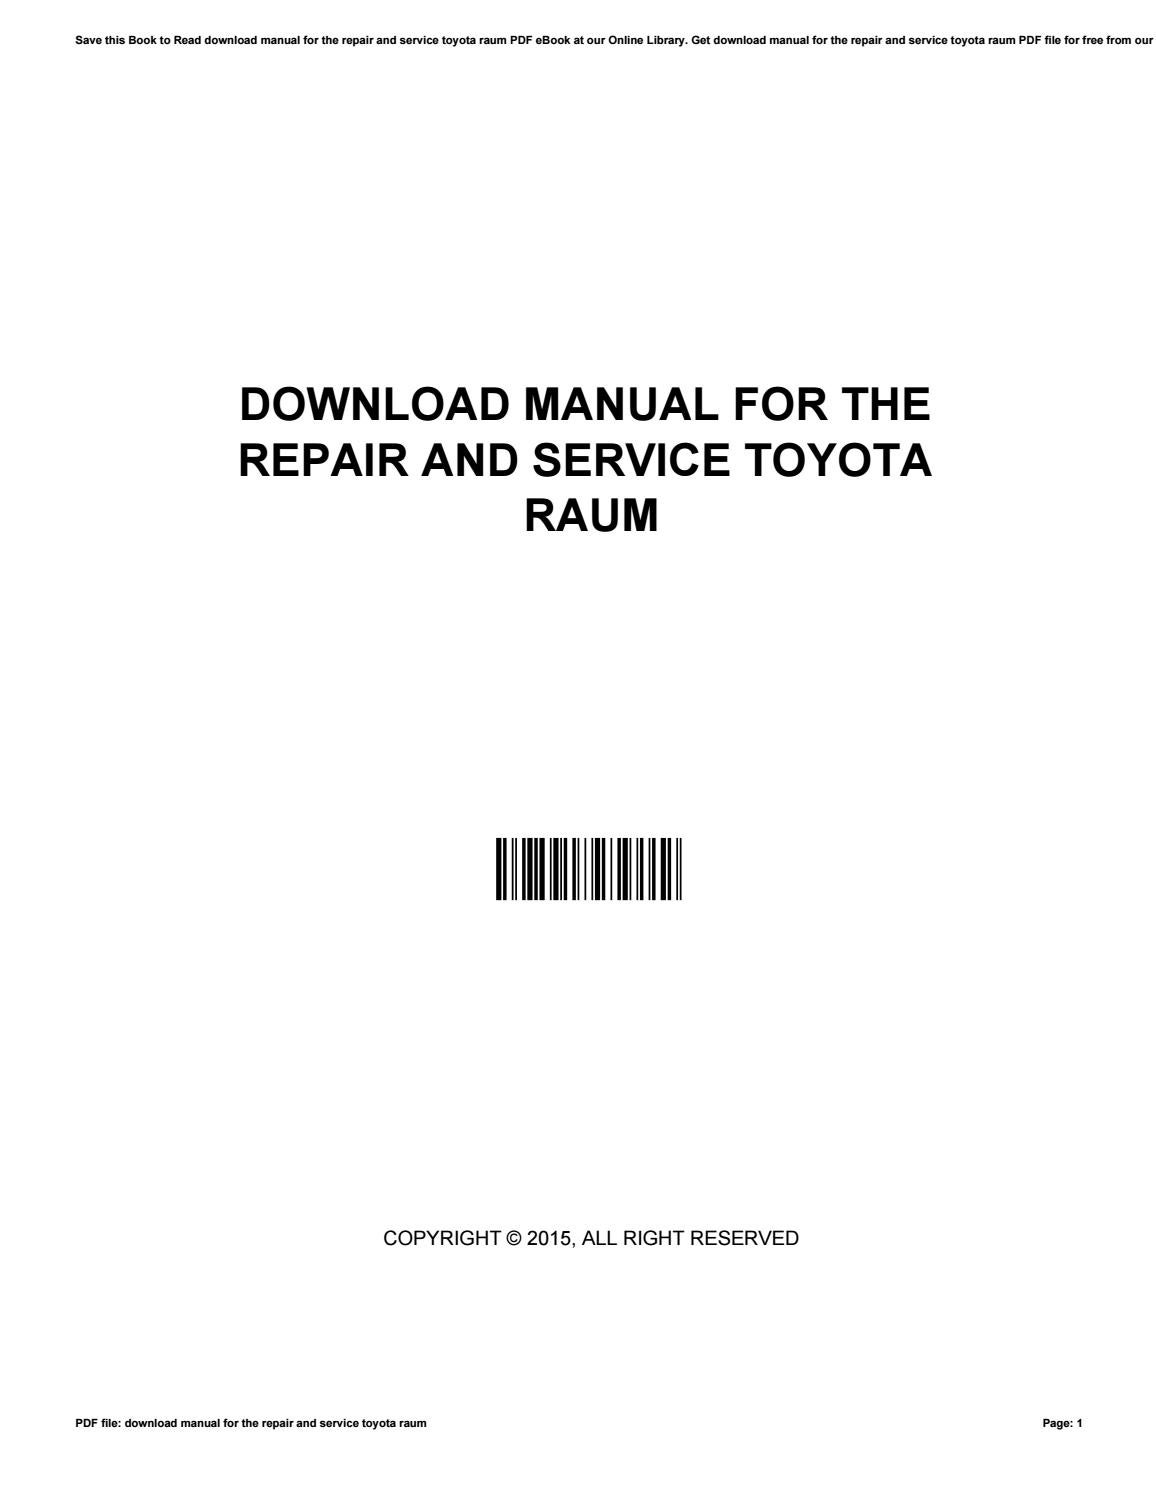 Download manual for the repair and service toyota raum by monadi718 - issuu